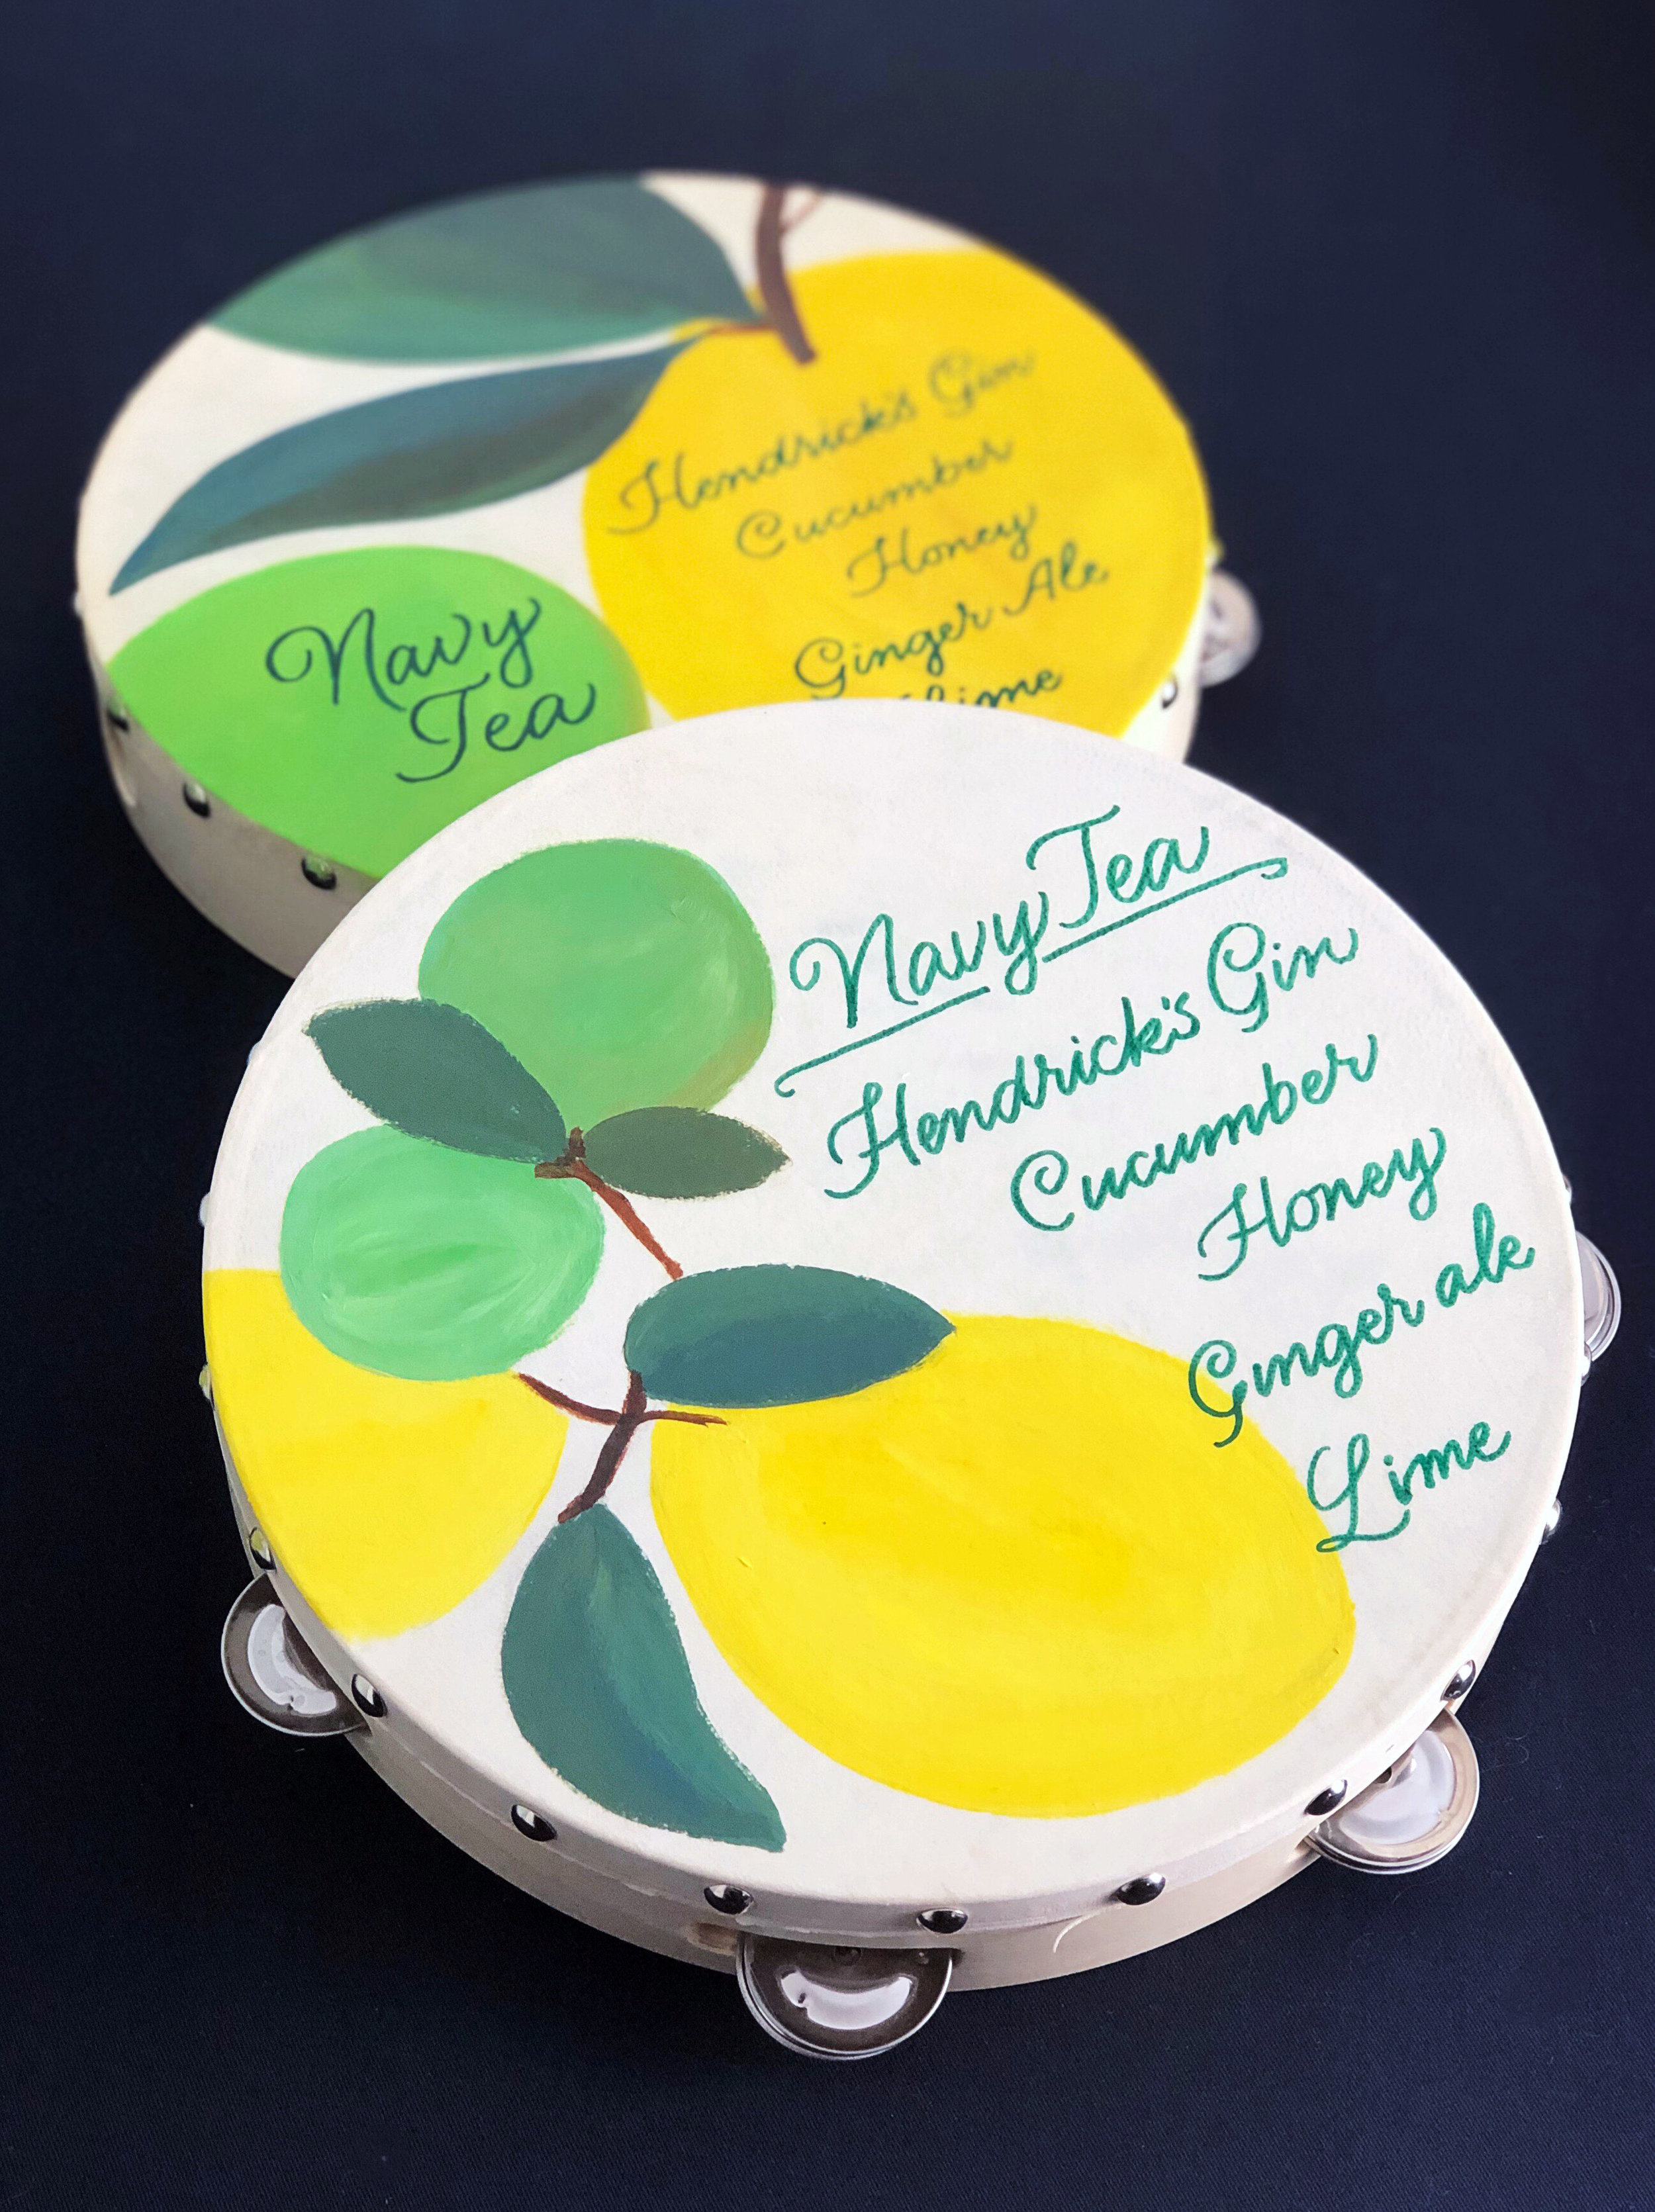 Bar menu tambourines, hand painted and lettered   by Chavelli www.chavelli.com